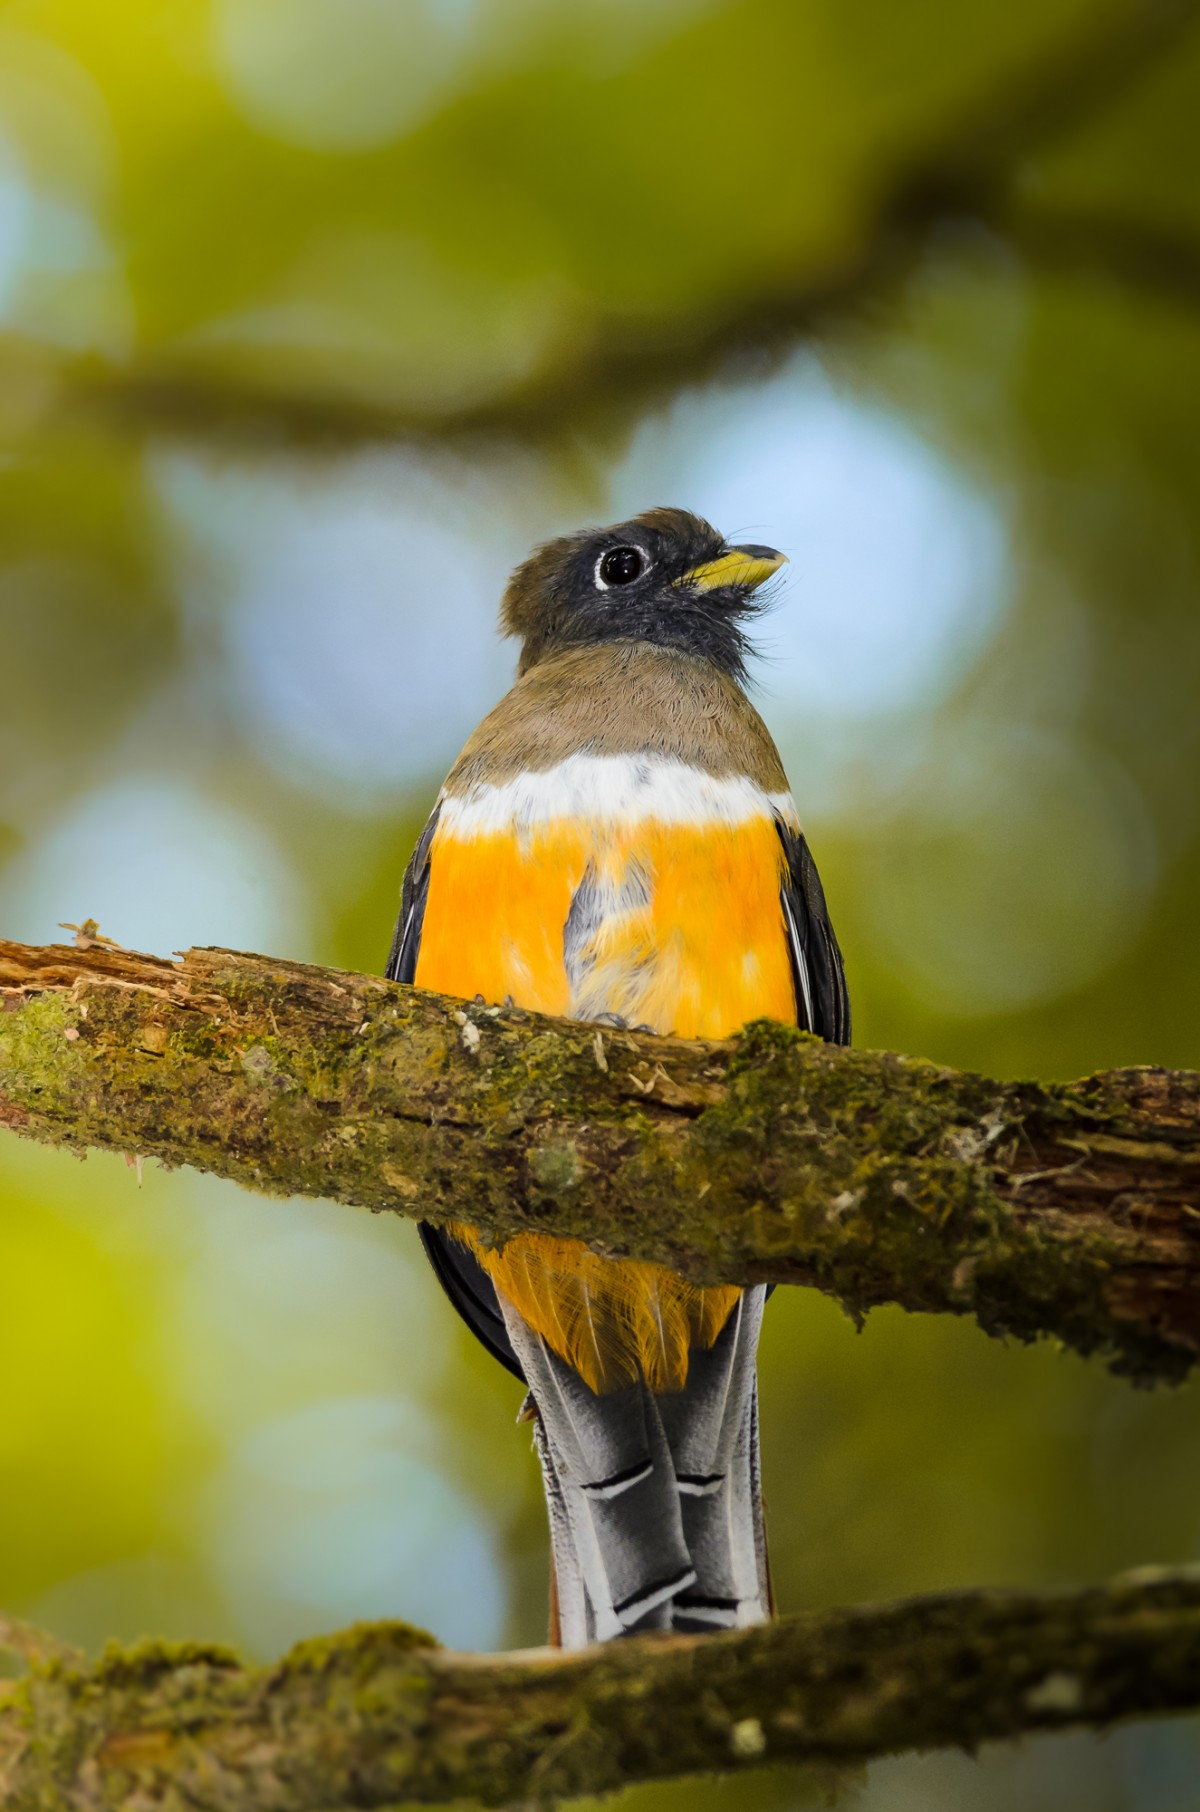 Female orange-bellied Trogon (Trogon aurantiiventris) perching on a branch.